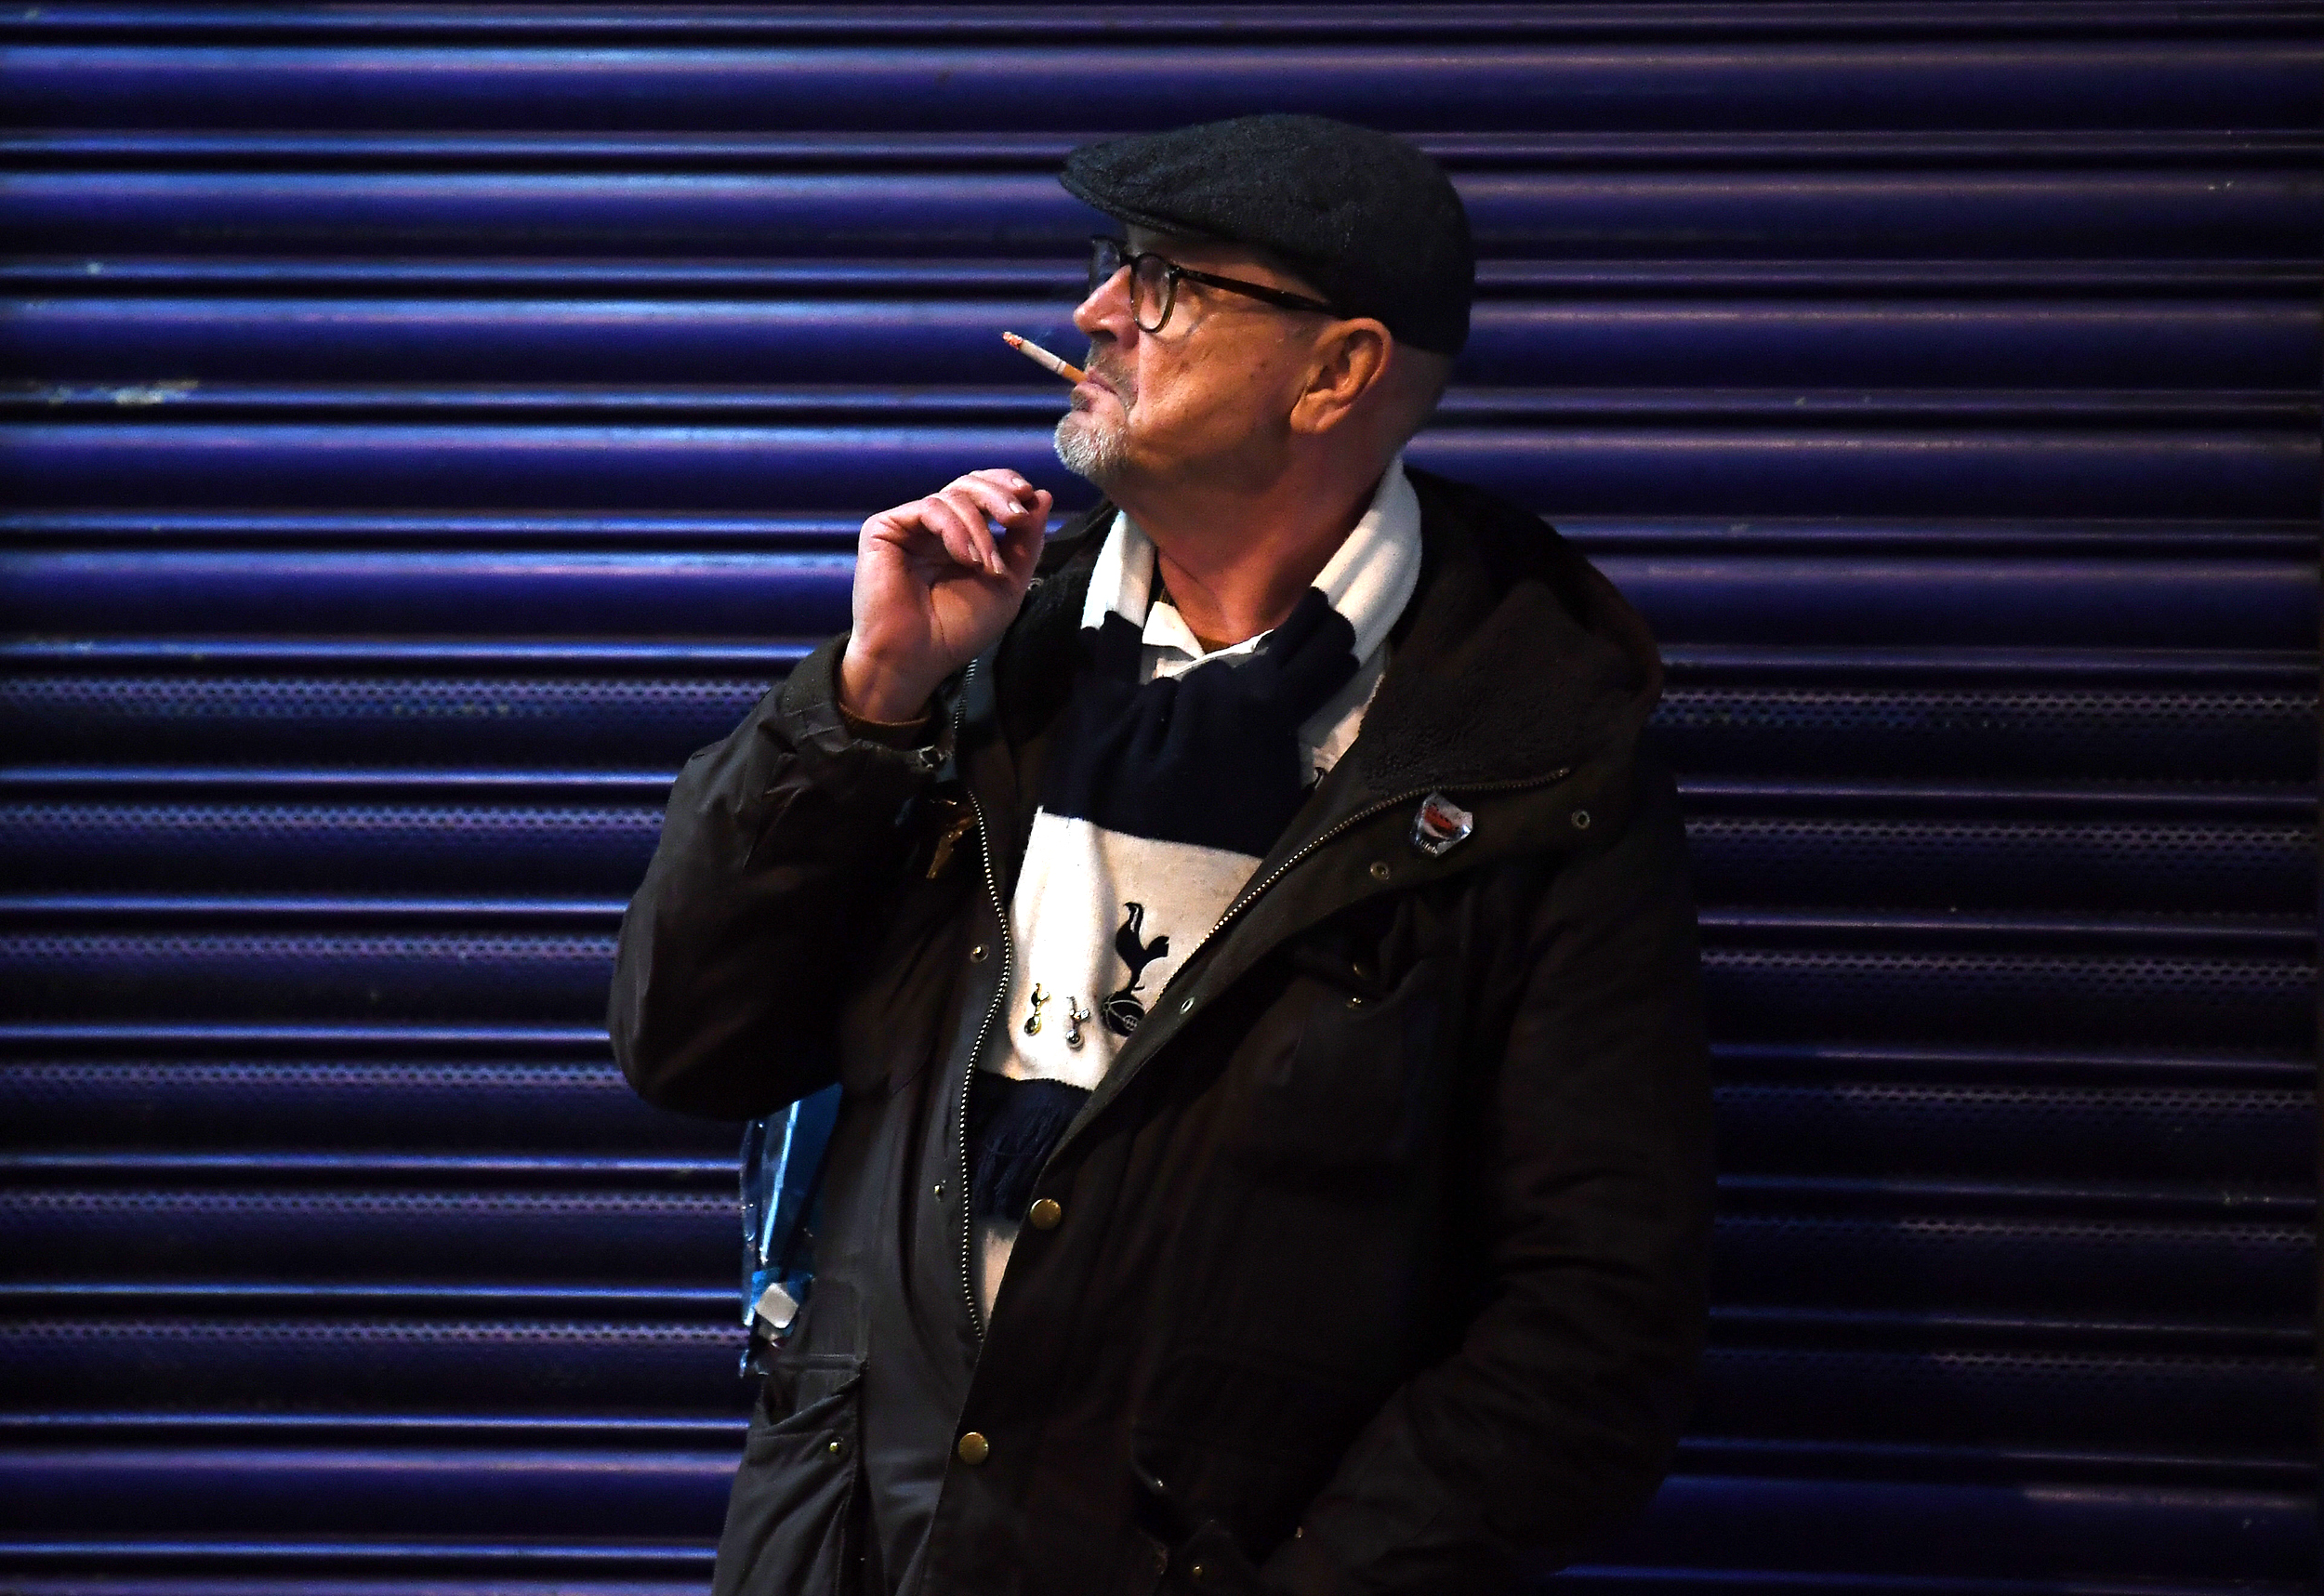 Marlboro maker Philip Morris says it could stop selling cigarettes in Britain within 10 years